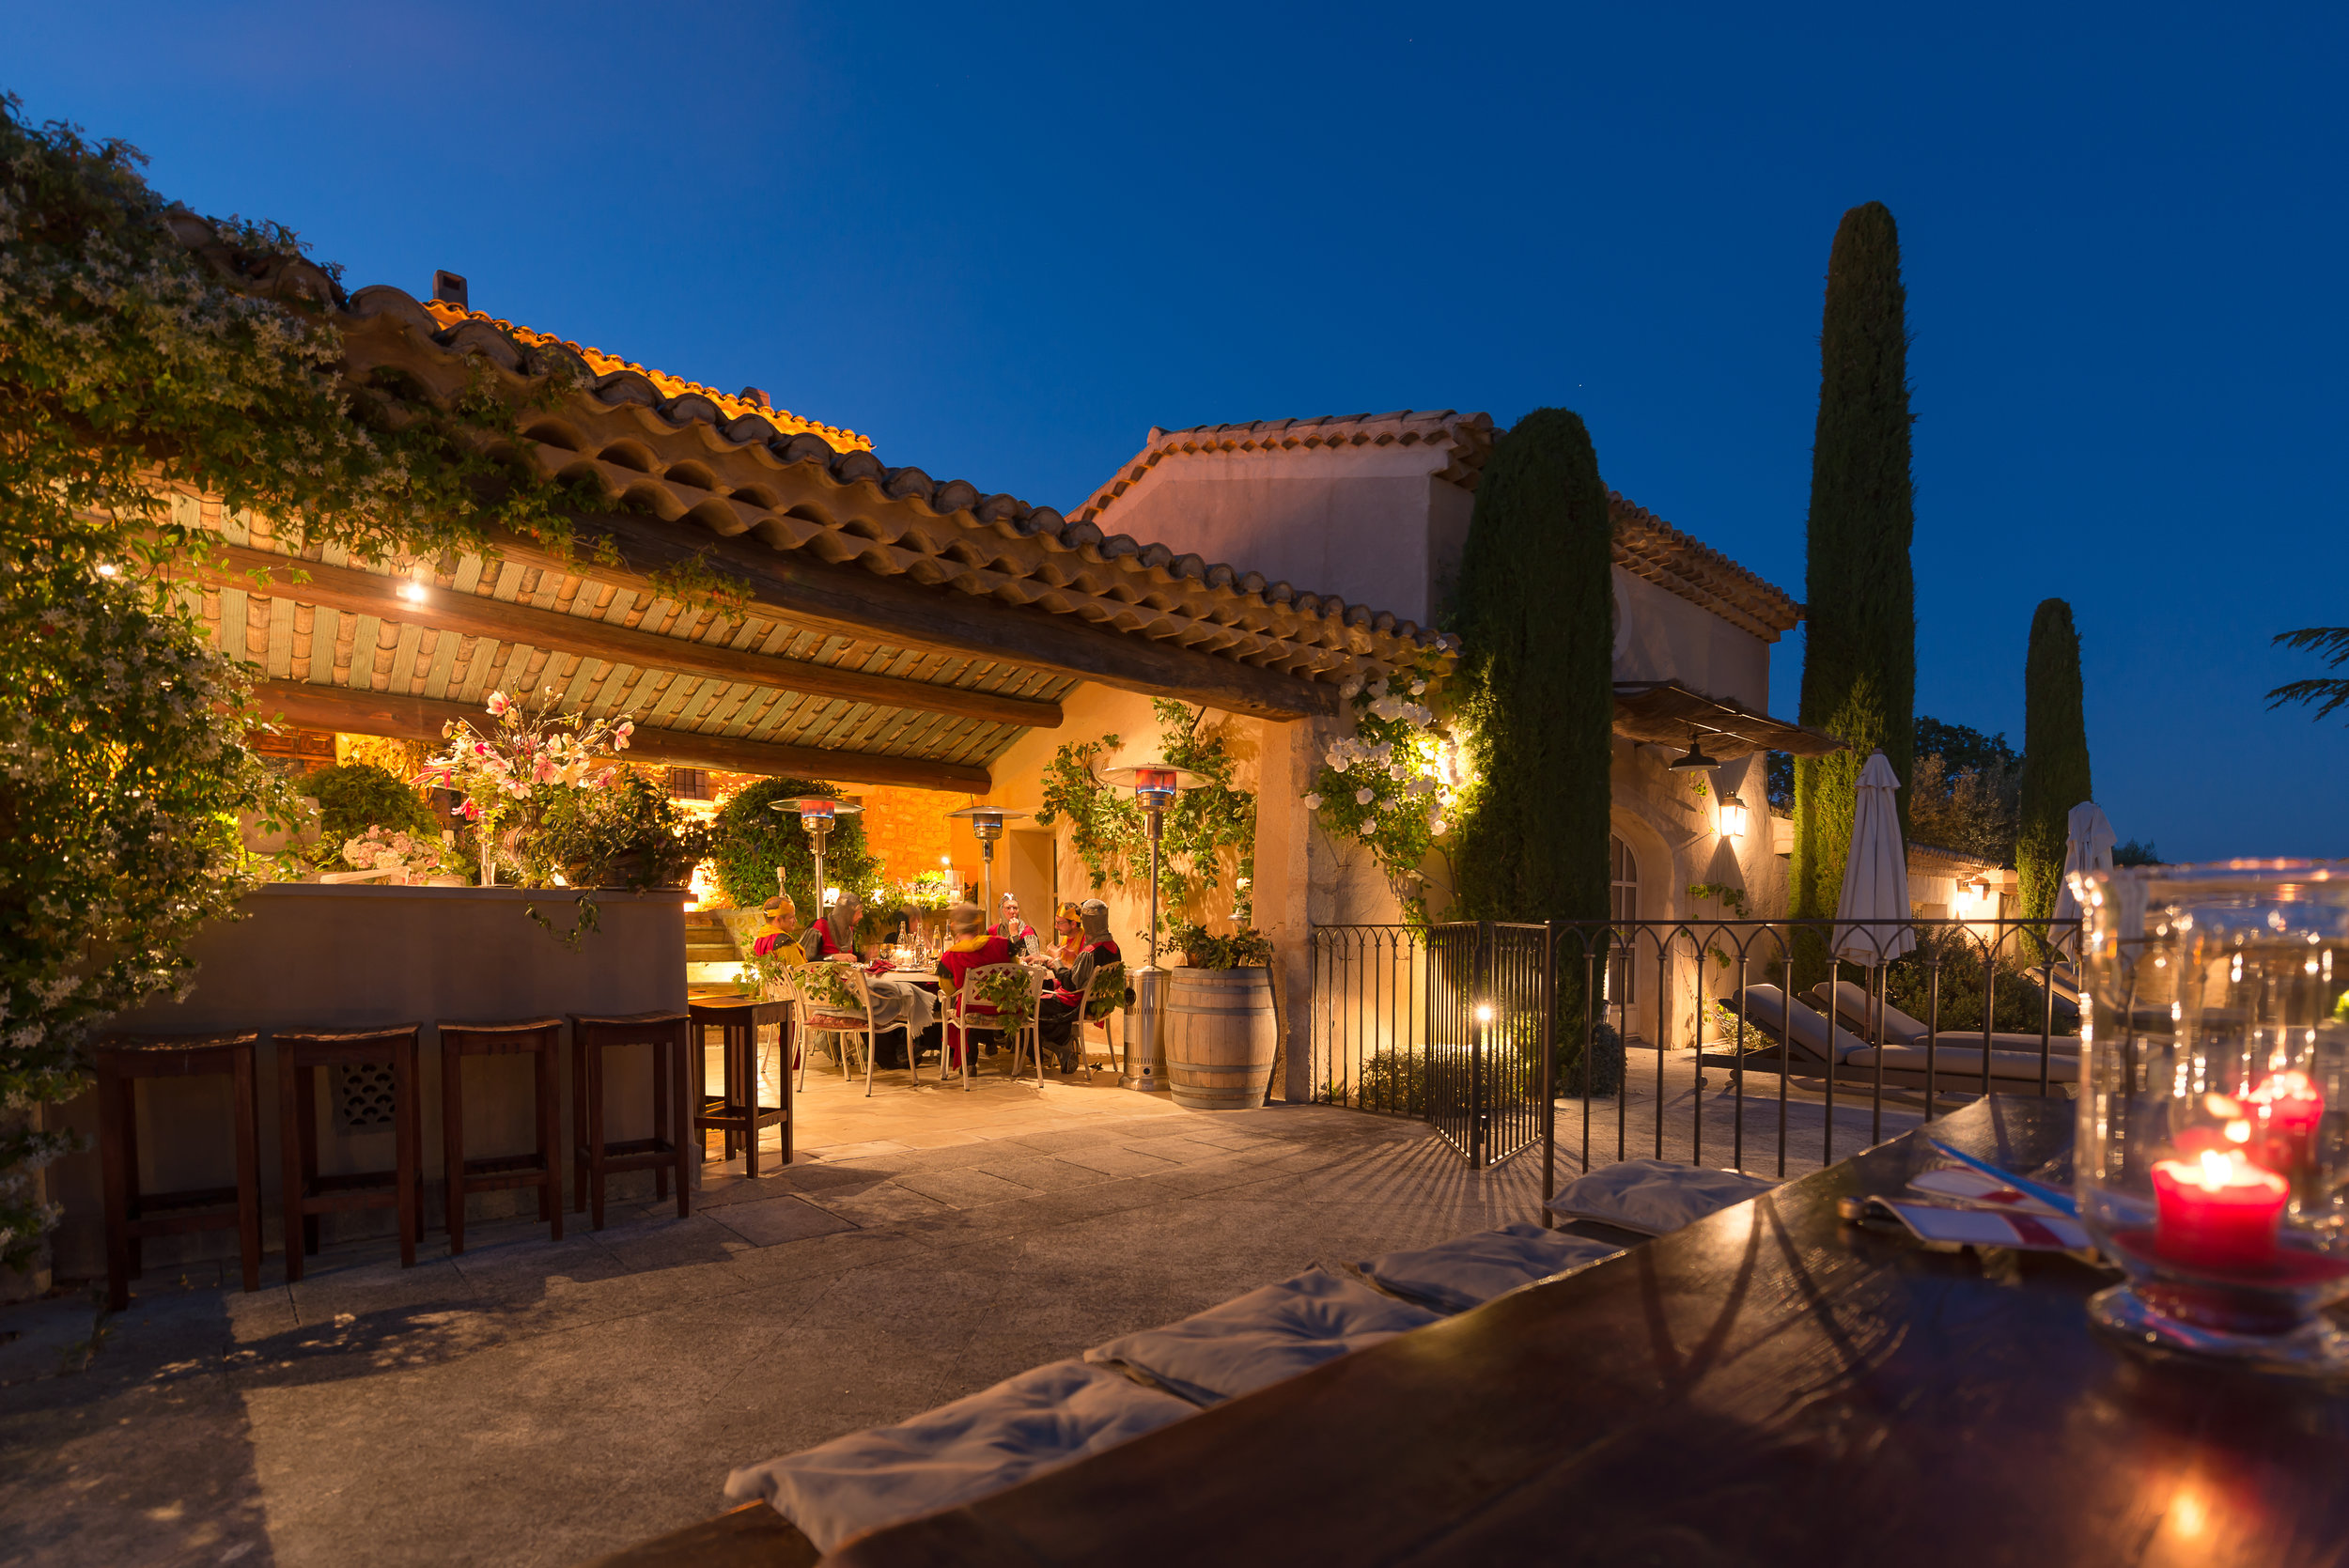 La Verriere outdoor dining